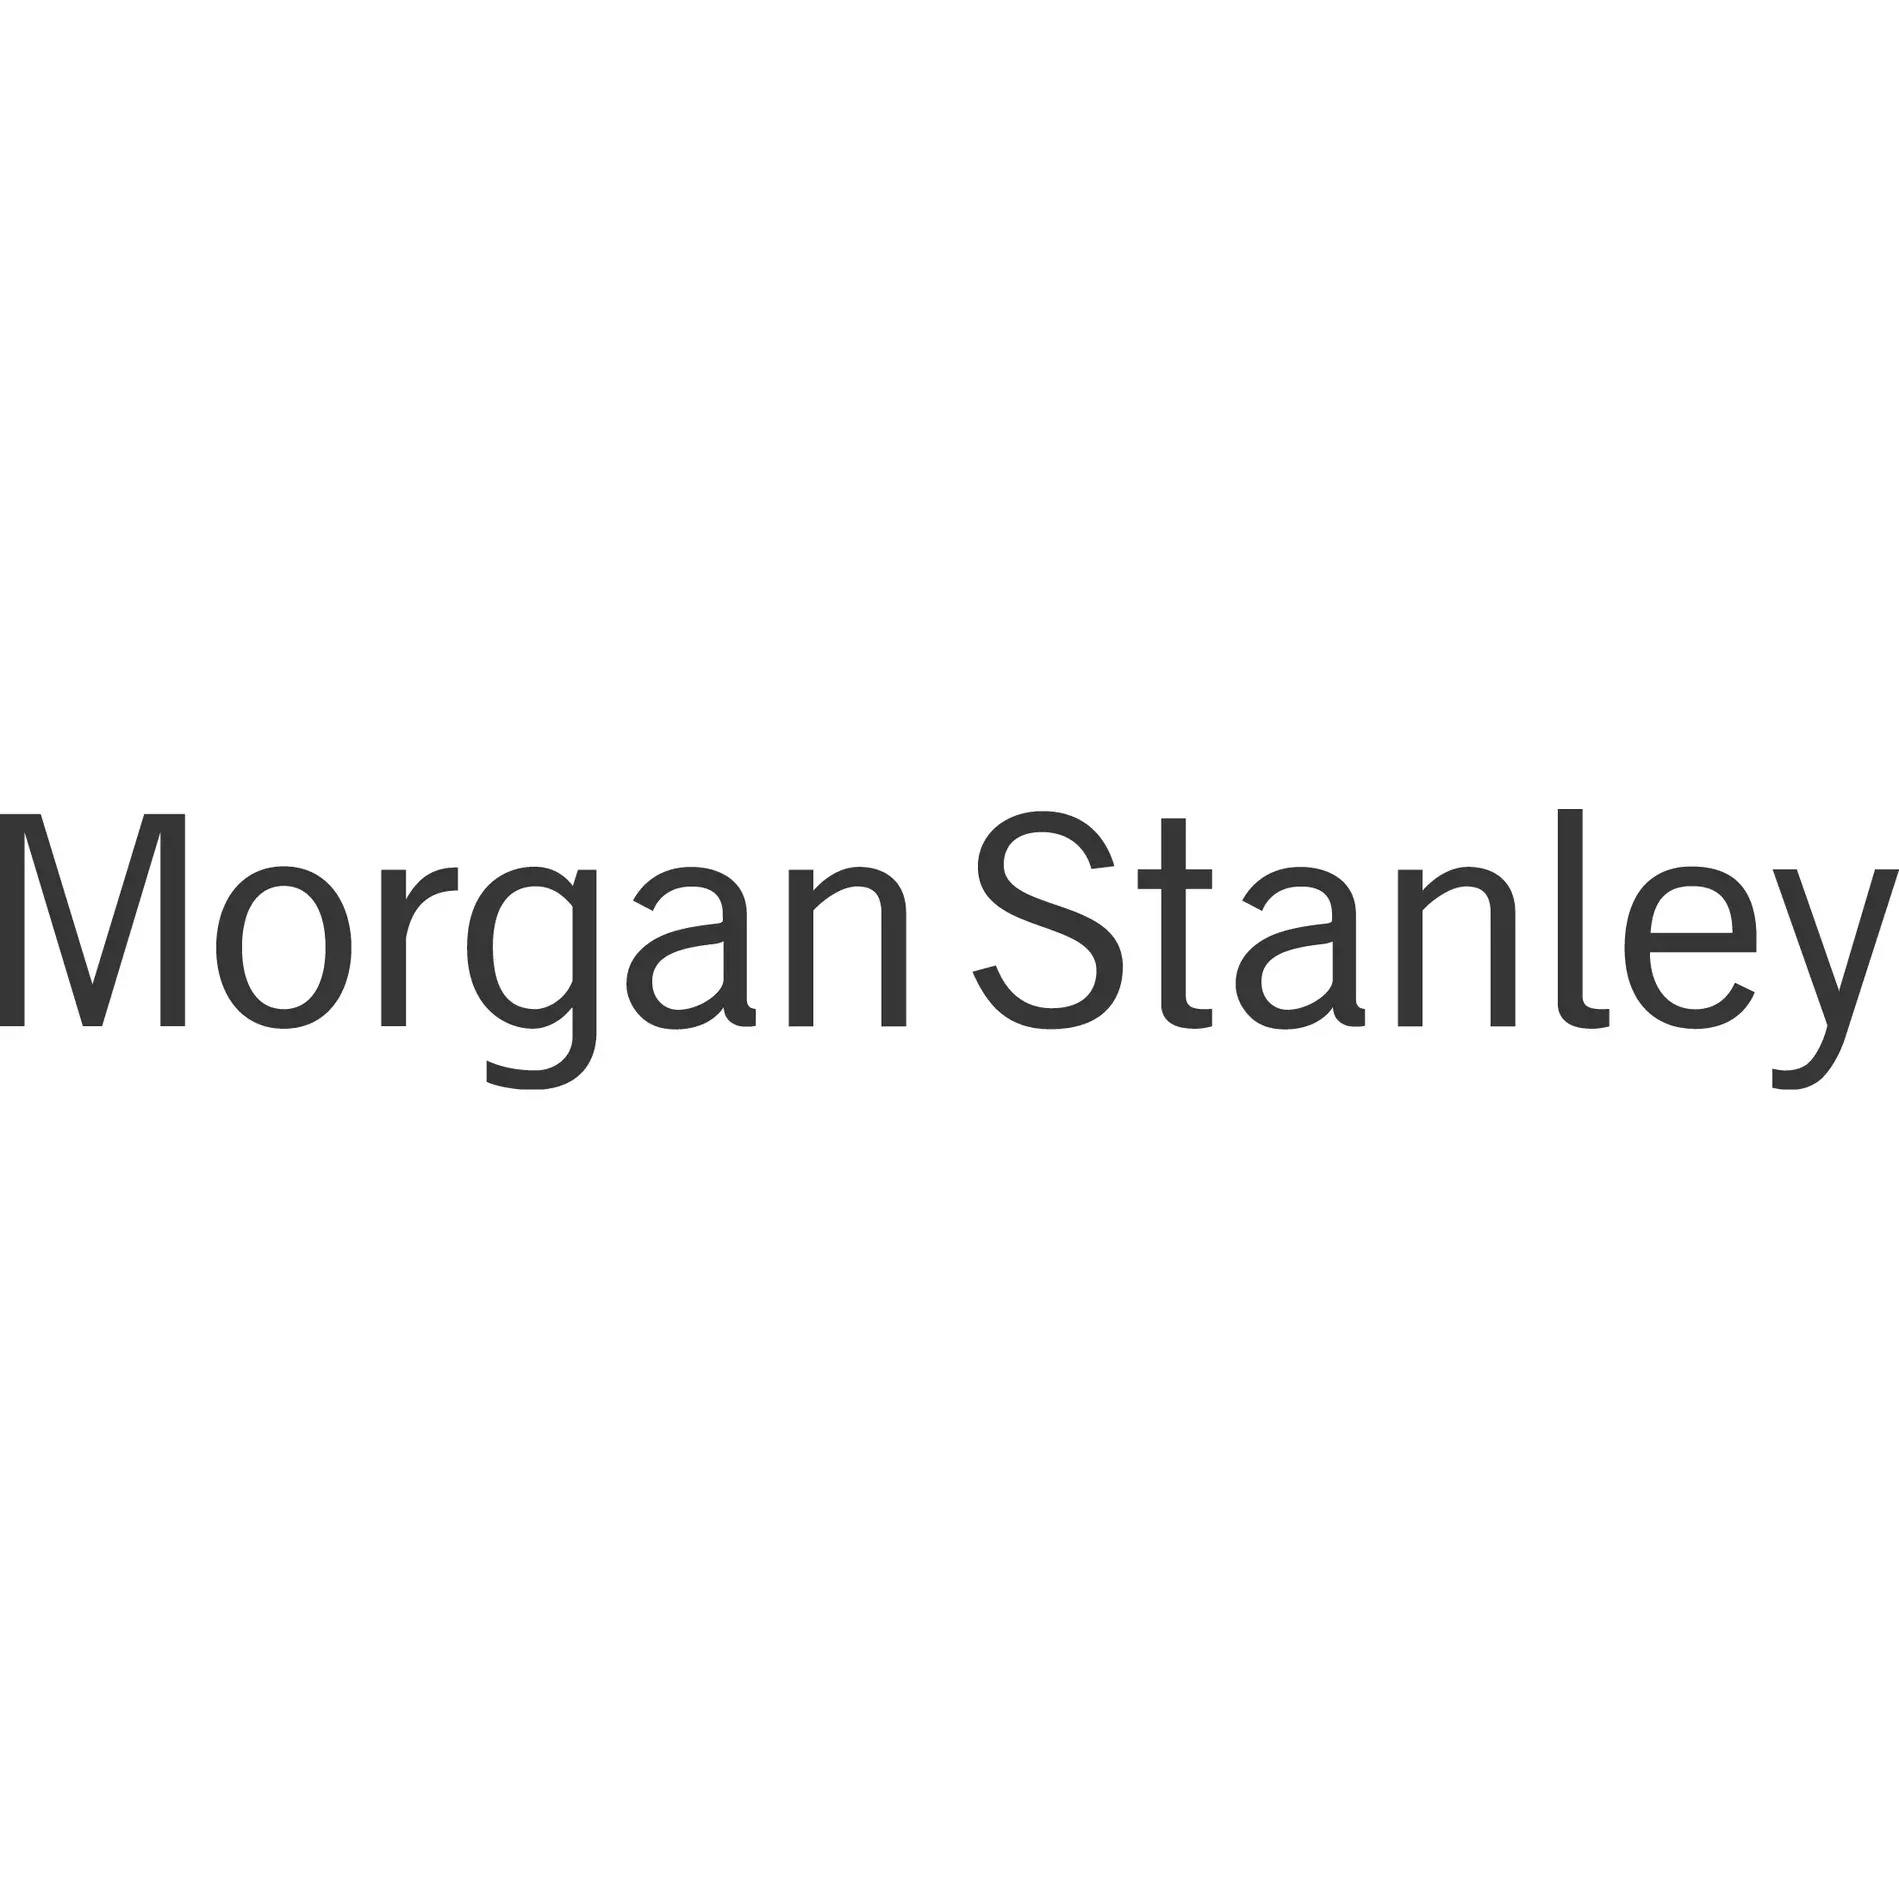 The LeRose Group - Morgan Stanley